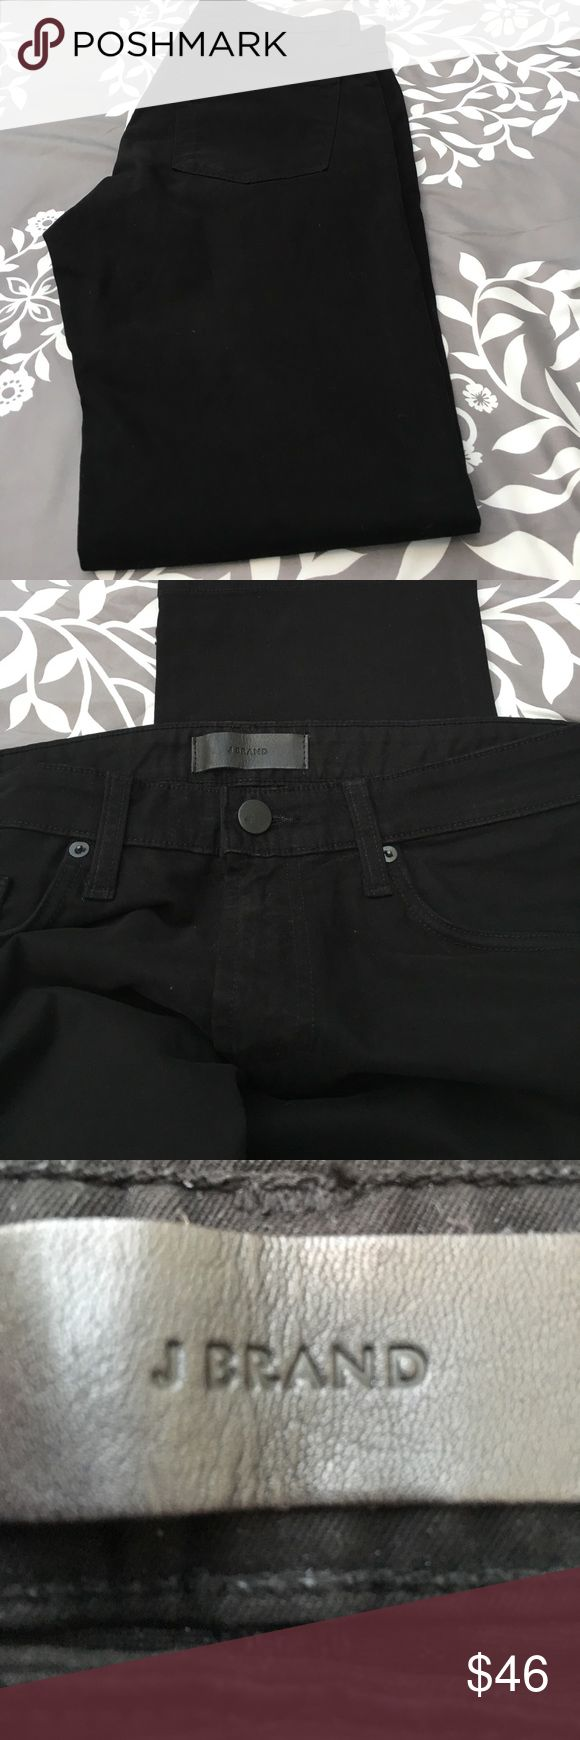 J brand jeans J Brand jeans, all black in color. Has pockets on the front and the back. In excellent condition. J Brand Jeans